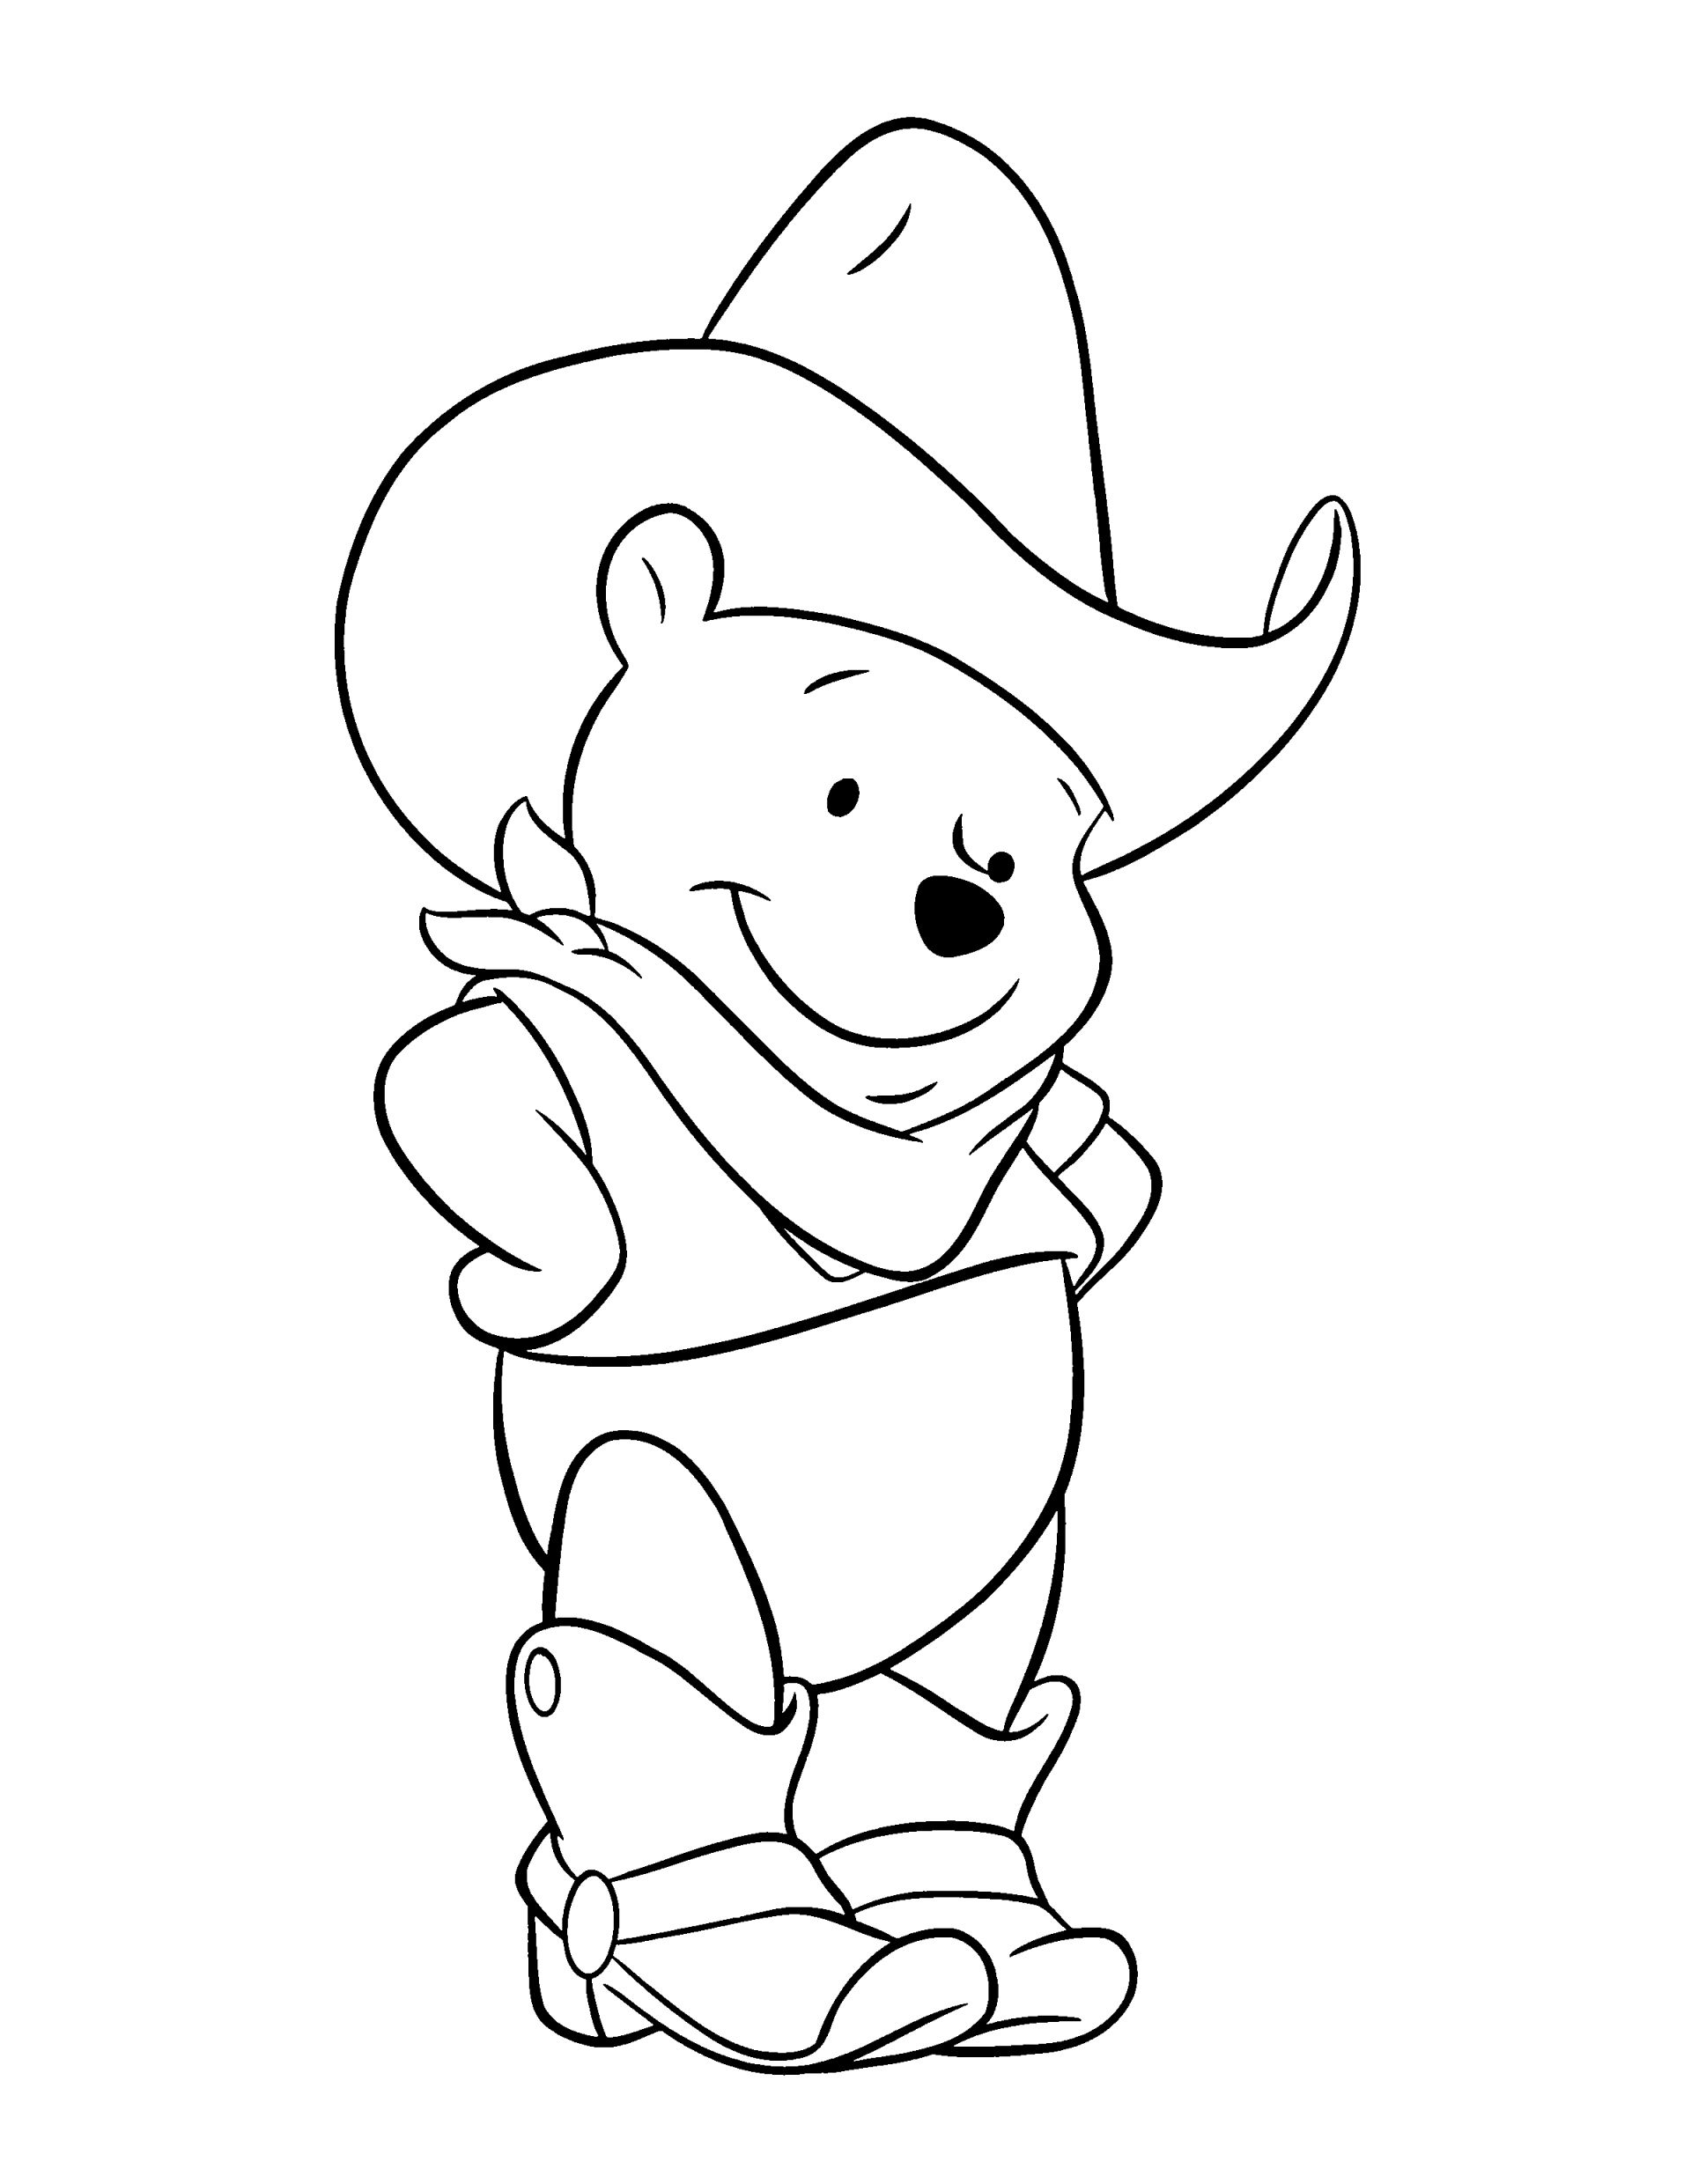 Adult Beauty Disney Cartoon Coloring Pages Images best cartoon coloring pages cute puppy animal to download and print for free gallery images